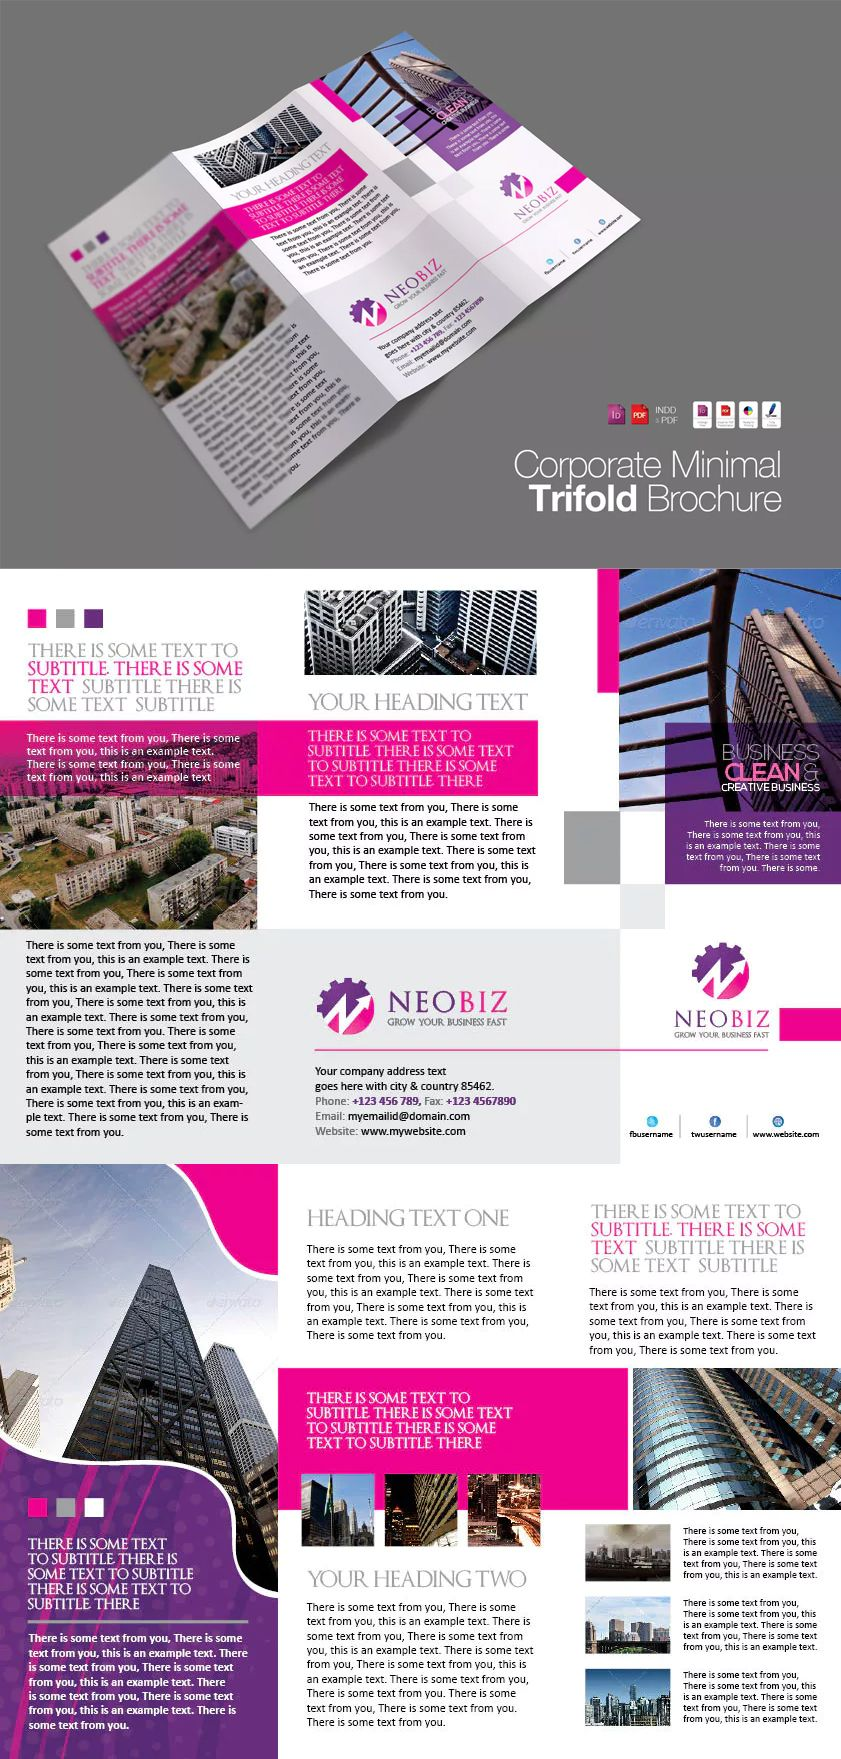 Trifold Clean Brochure Template InDesign INDD | Graphics | Pinterest ...